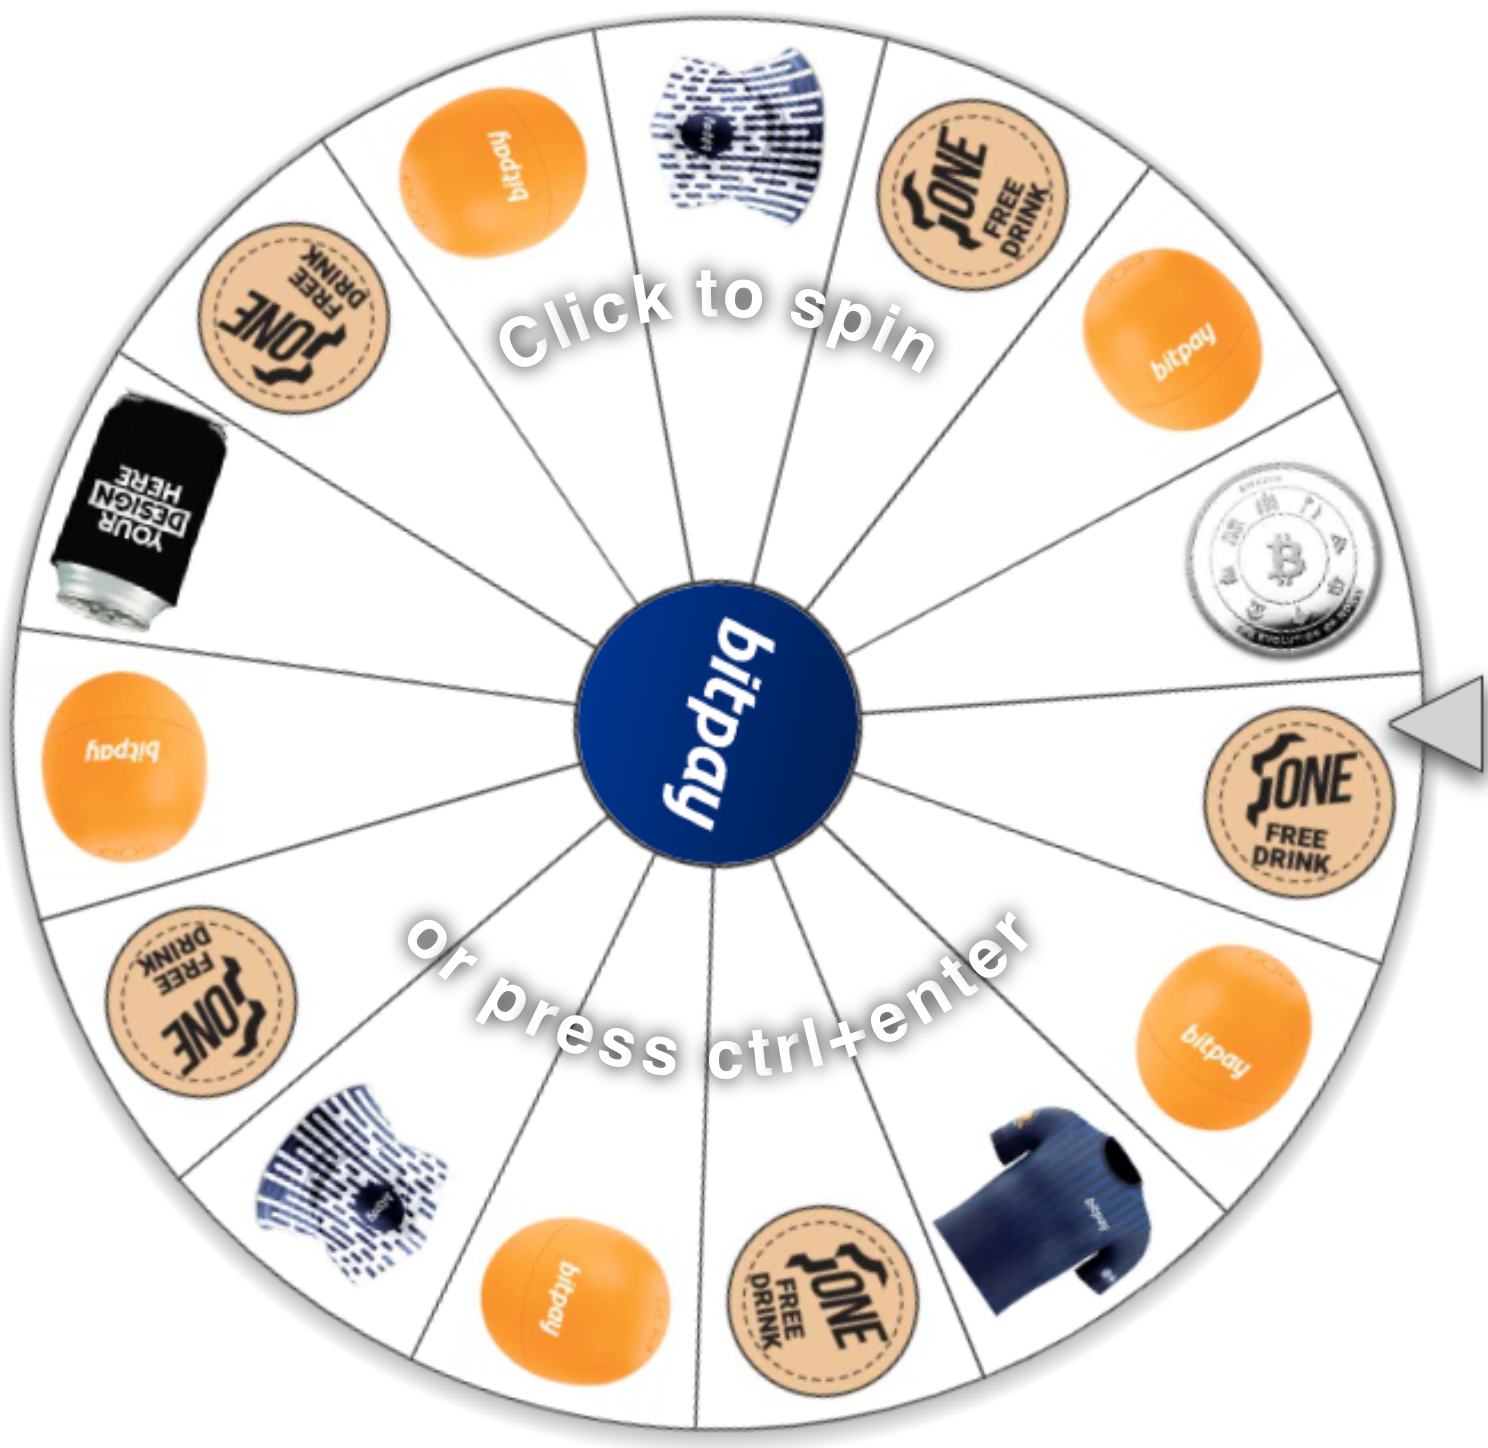 Conference Wheel Spinner for Prizes